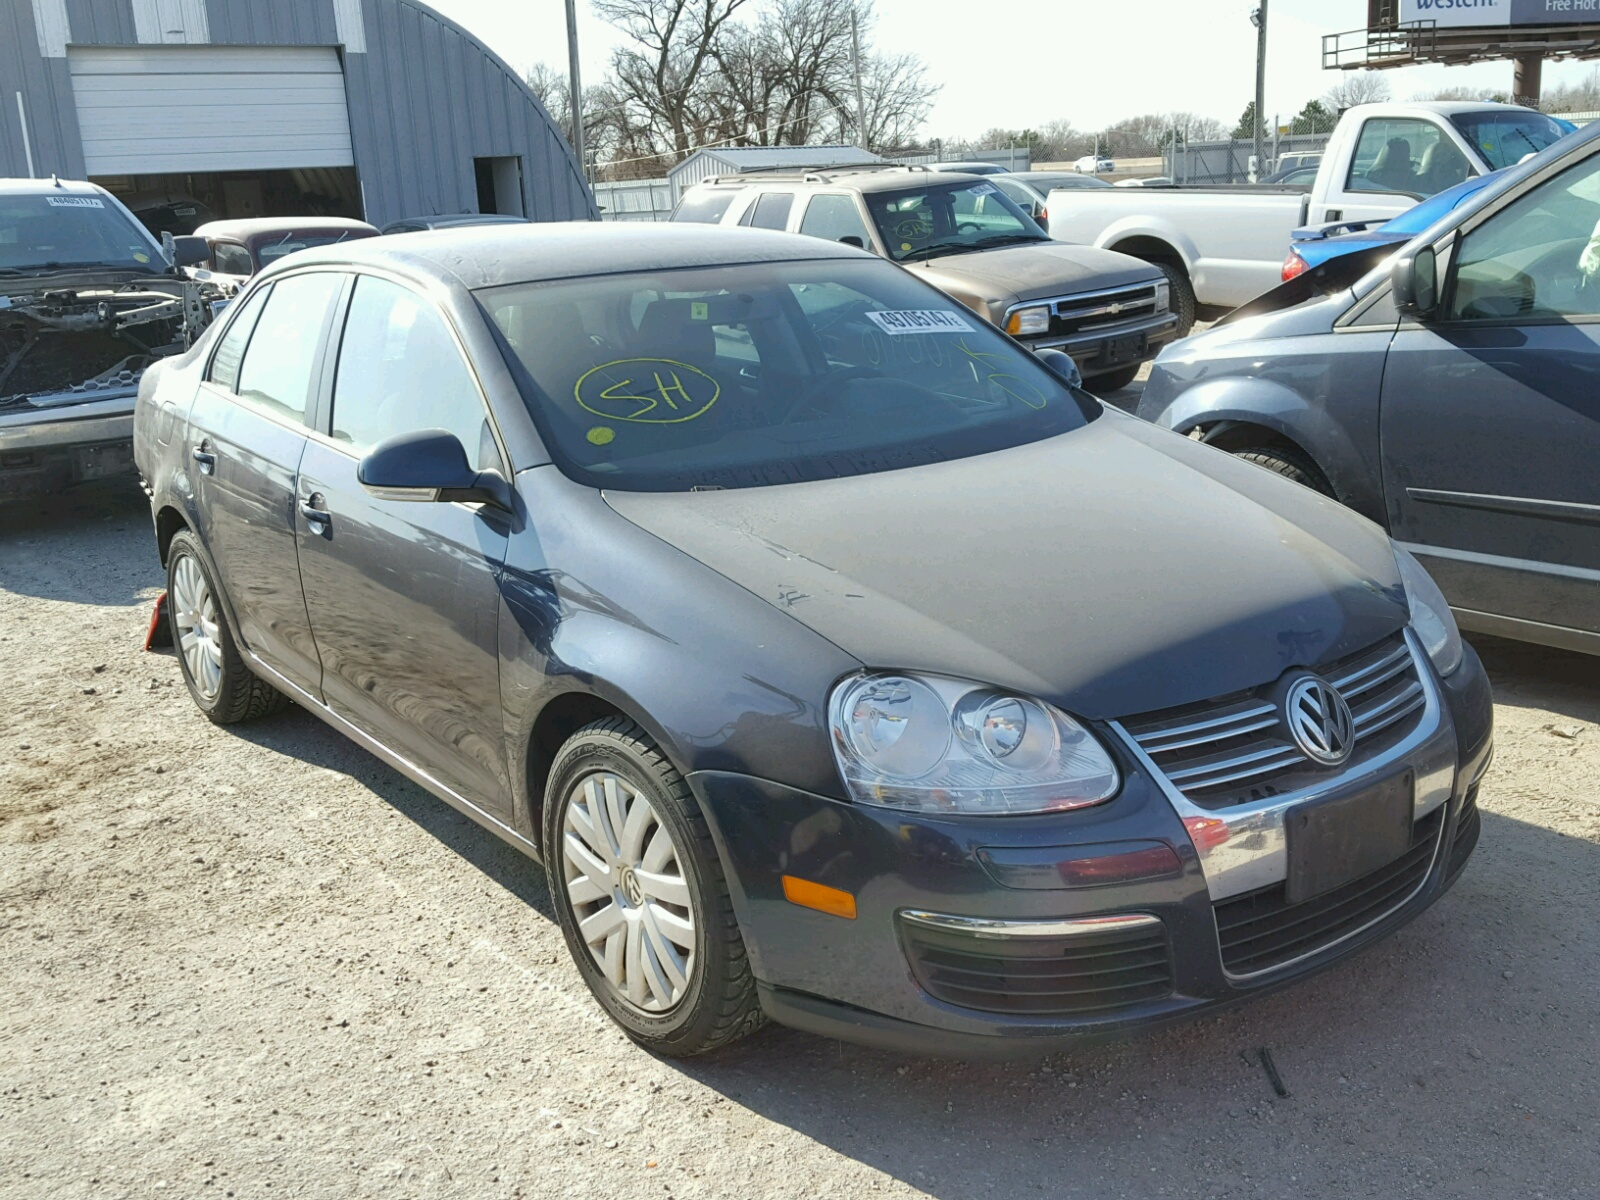 3vwjz7aj9am018289 2010 black volkswagen jetta s on sale in ks wichita lot 49705147. Black Bedroom Furniture Sets. Home Design Ideas